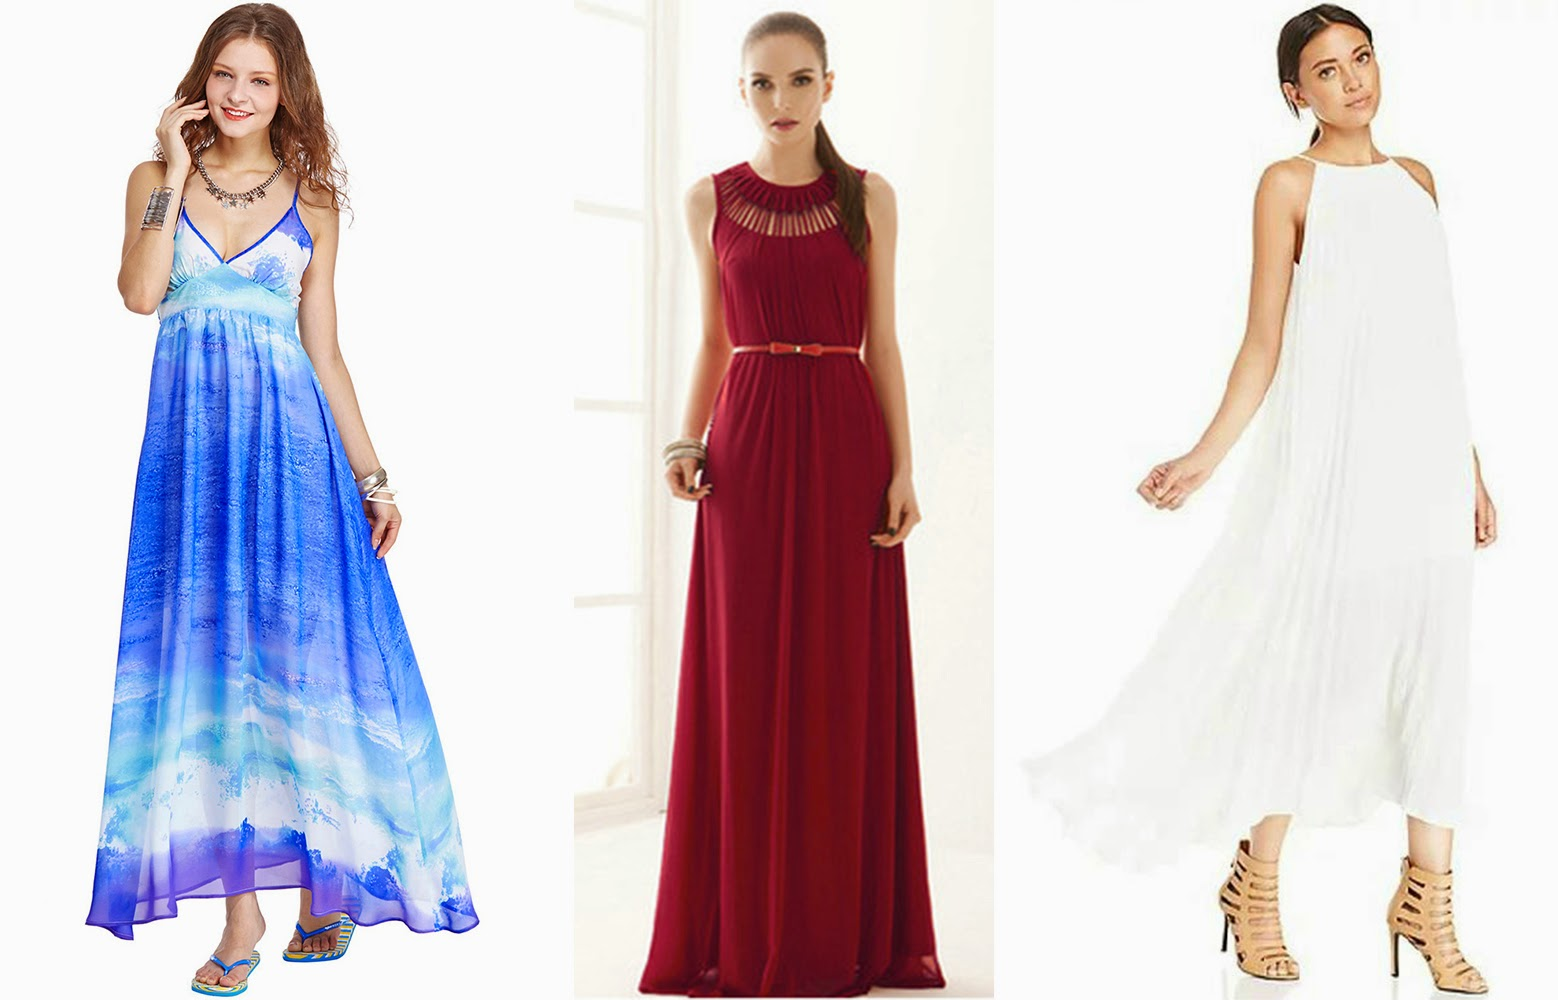 (L-R) Seawater Print Blue Camisole Dress, Sleeveless With Belt Hollow Maxi Dress, Off-shoulder Pleated Maxi White Dress